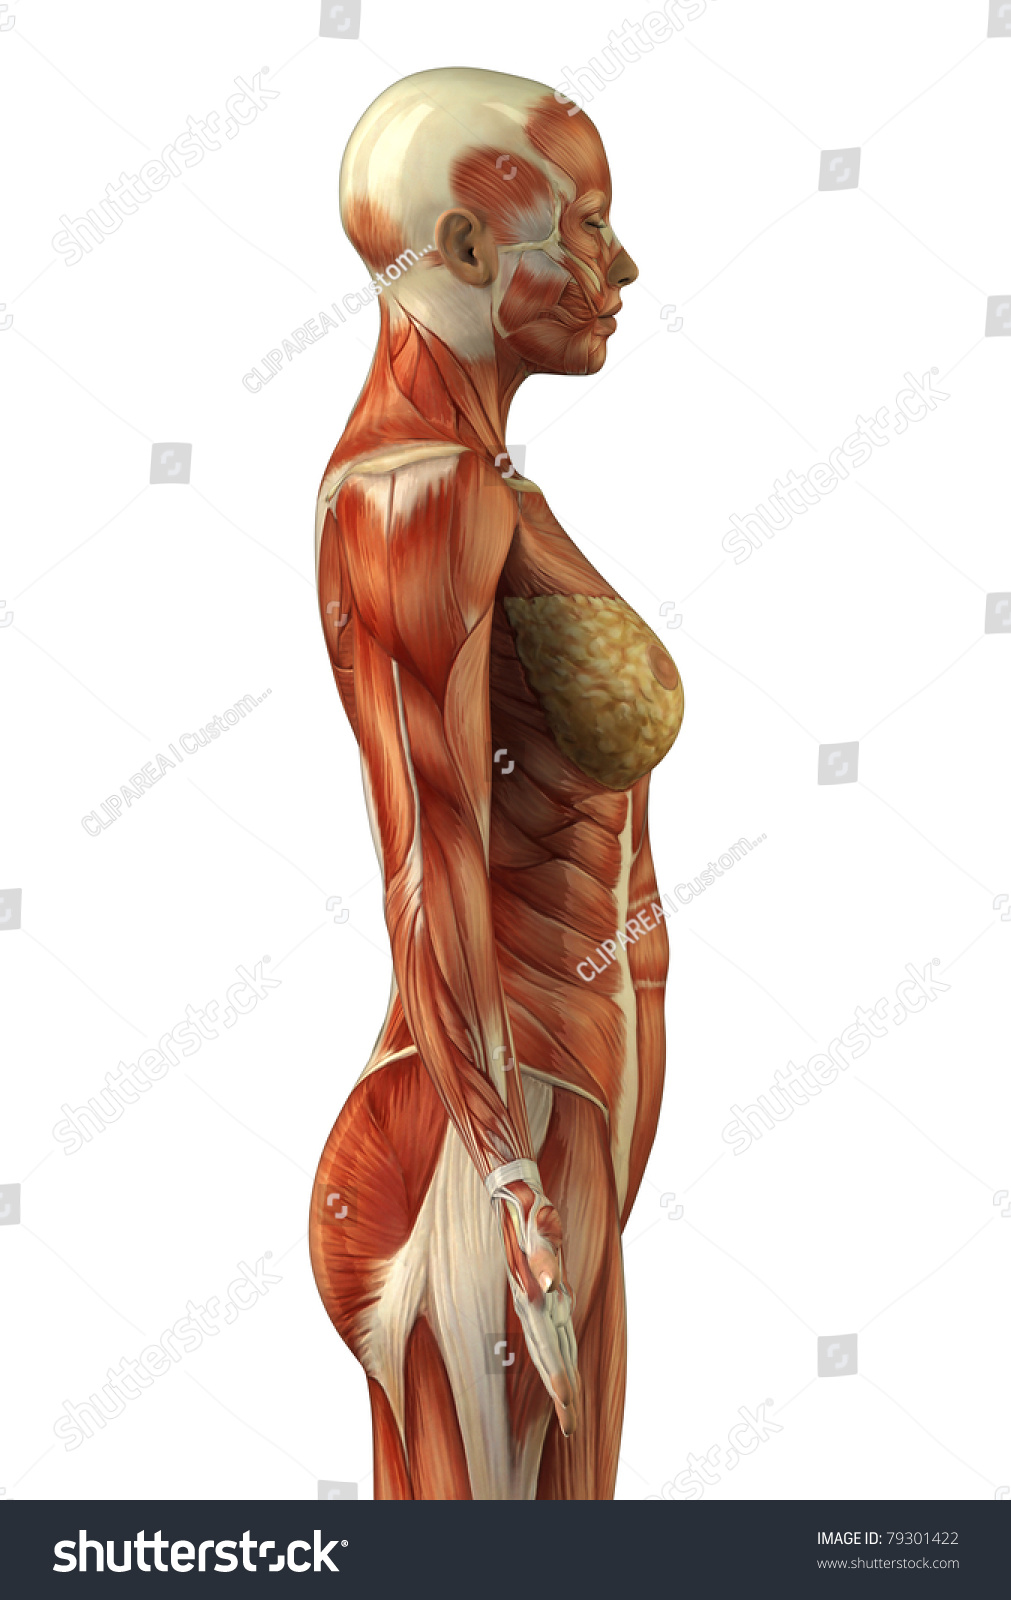 Body Without Skin Lateral View Stock Illustration 79301422